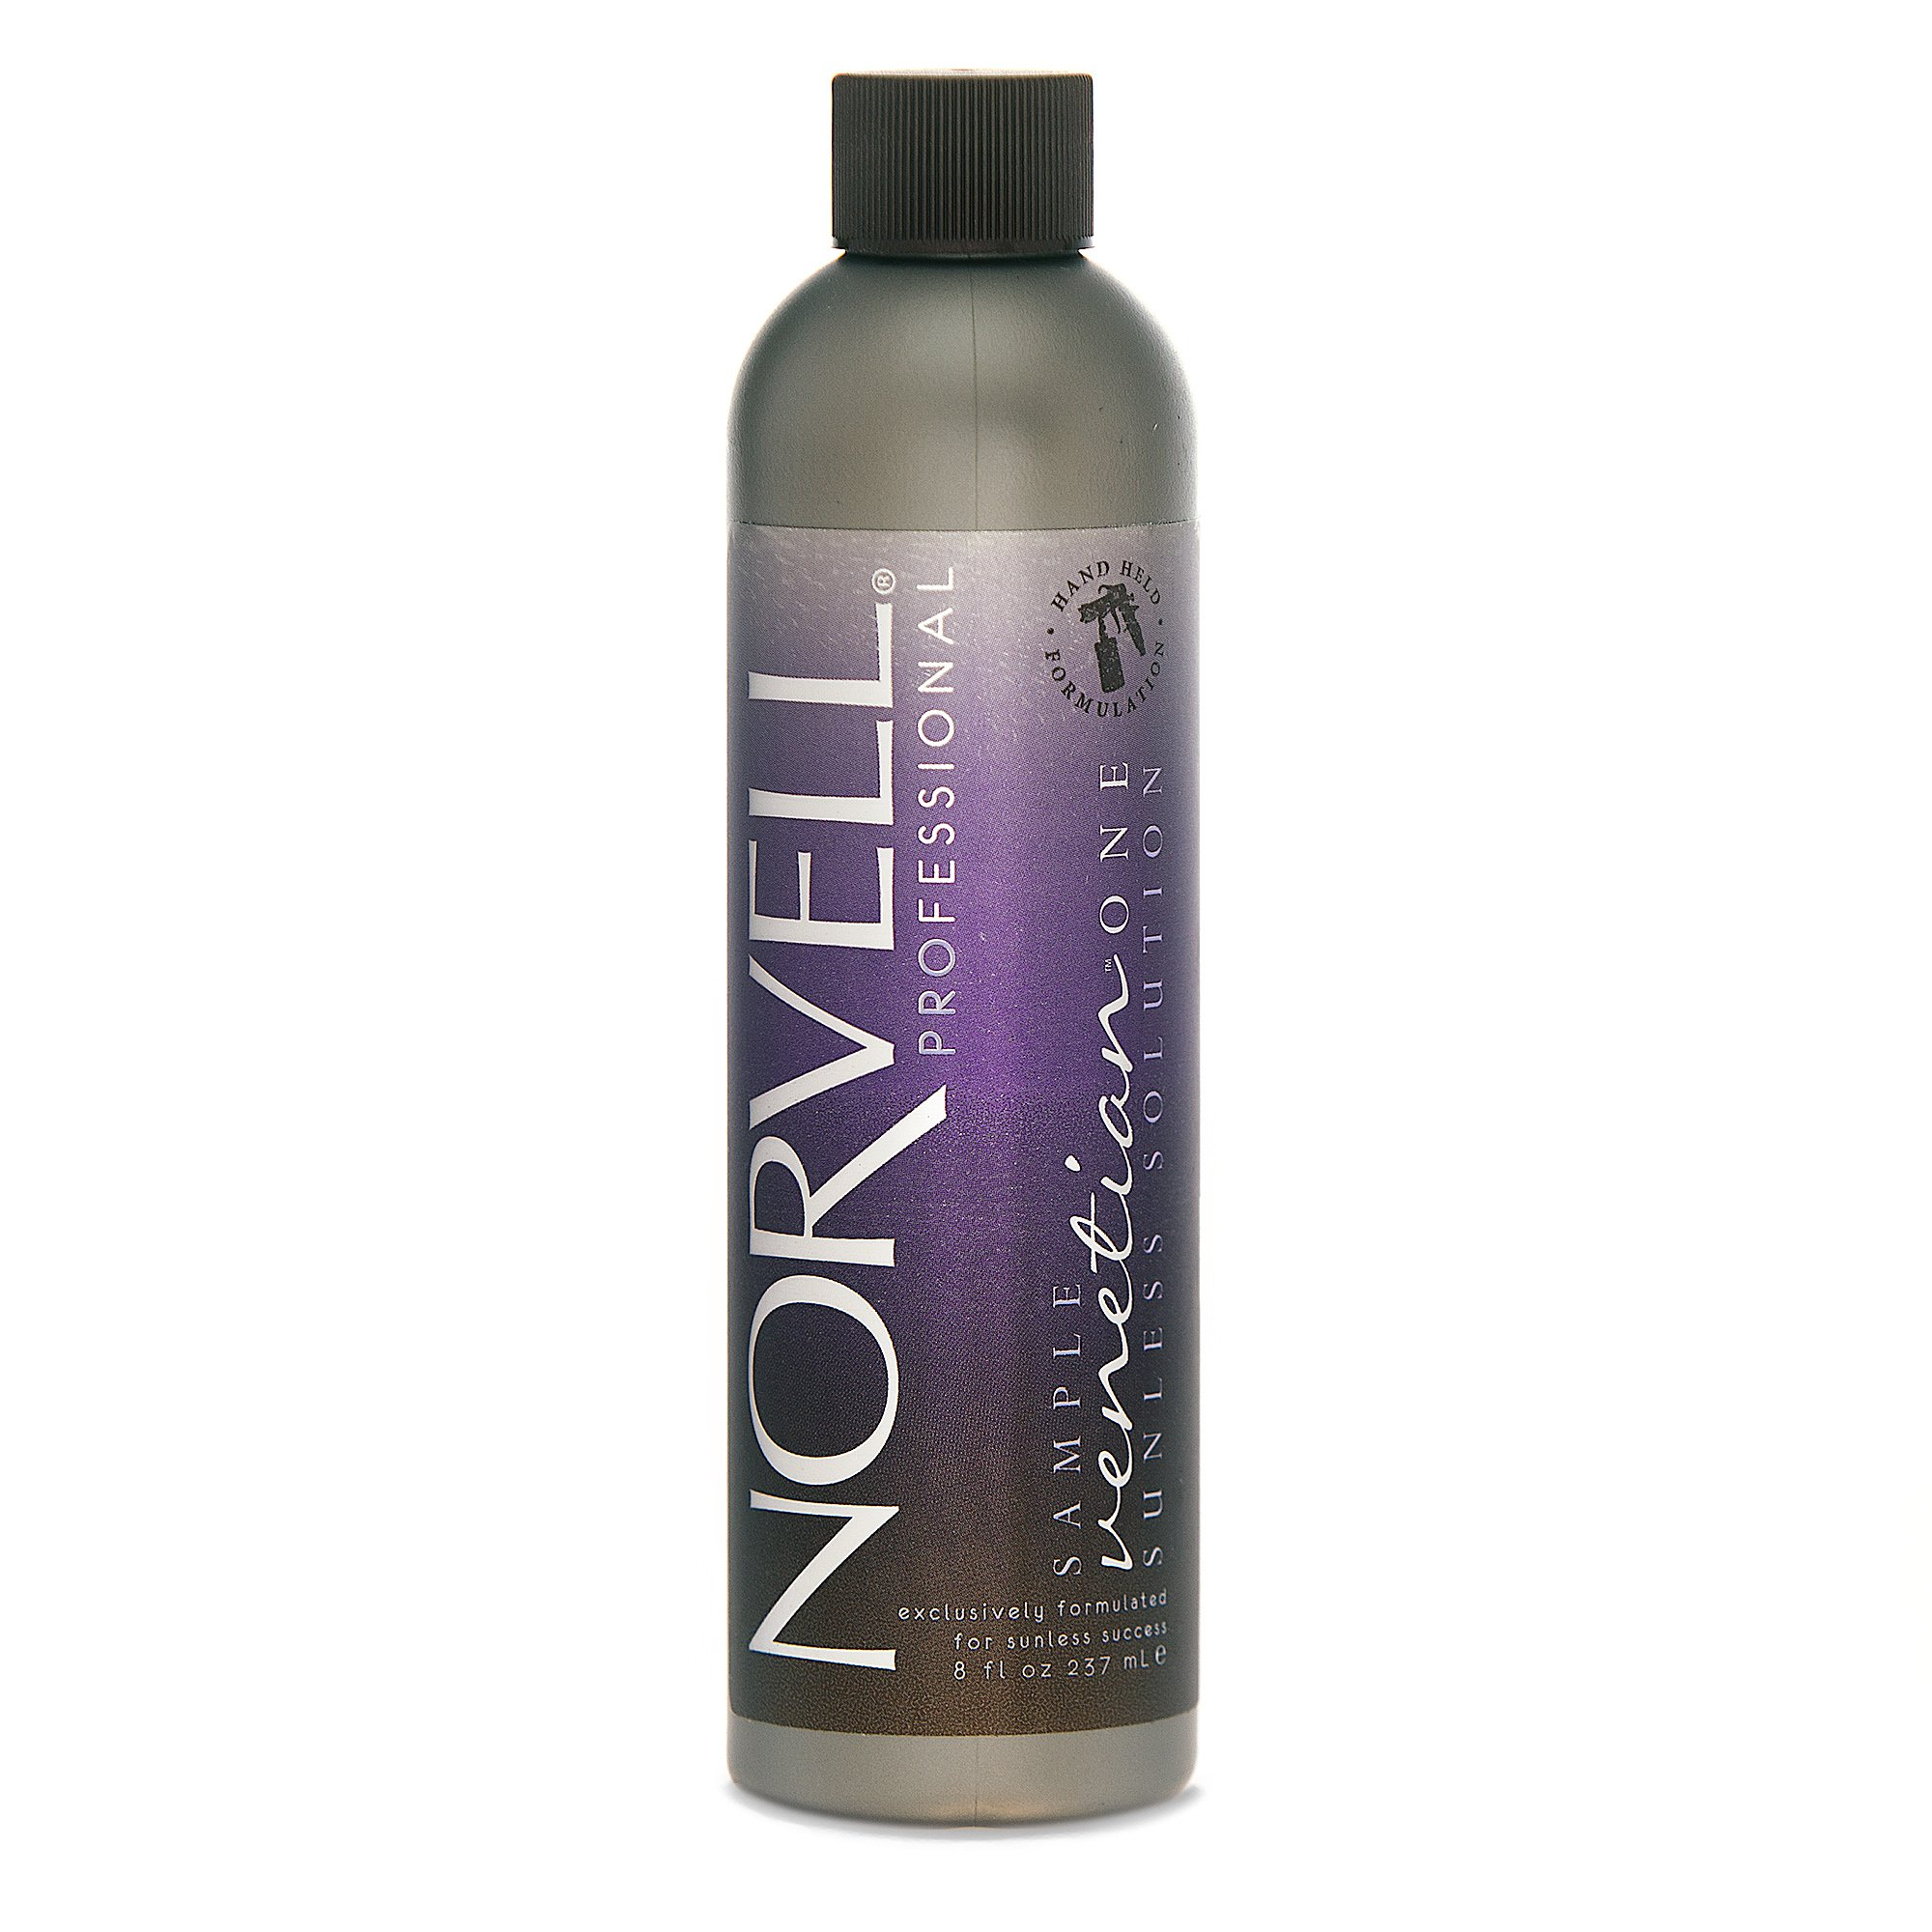 Norvell Premium Sunless Tanning Solution - Venetian One, 8 fl.oz. by Norvell